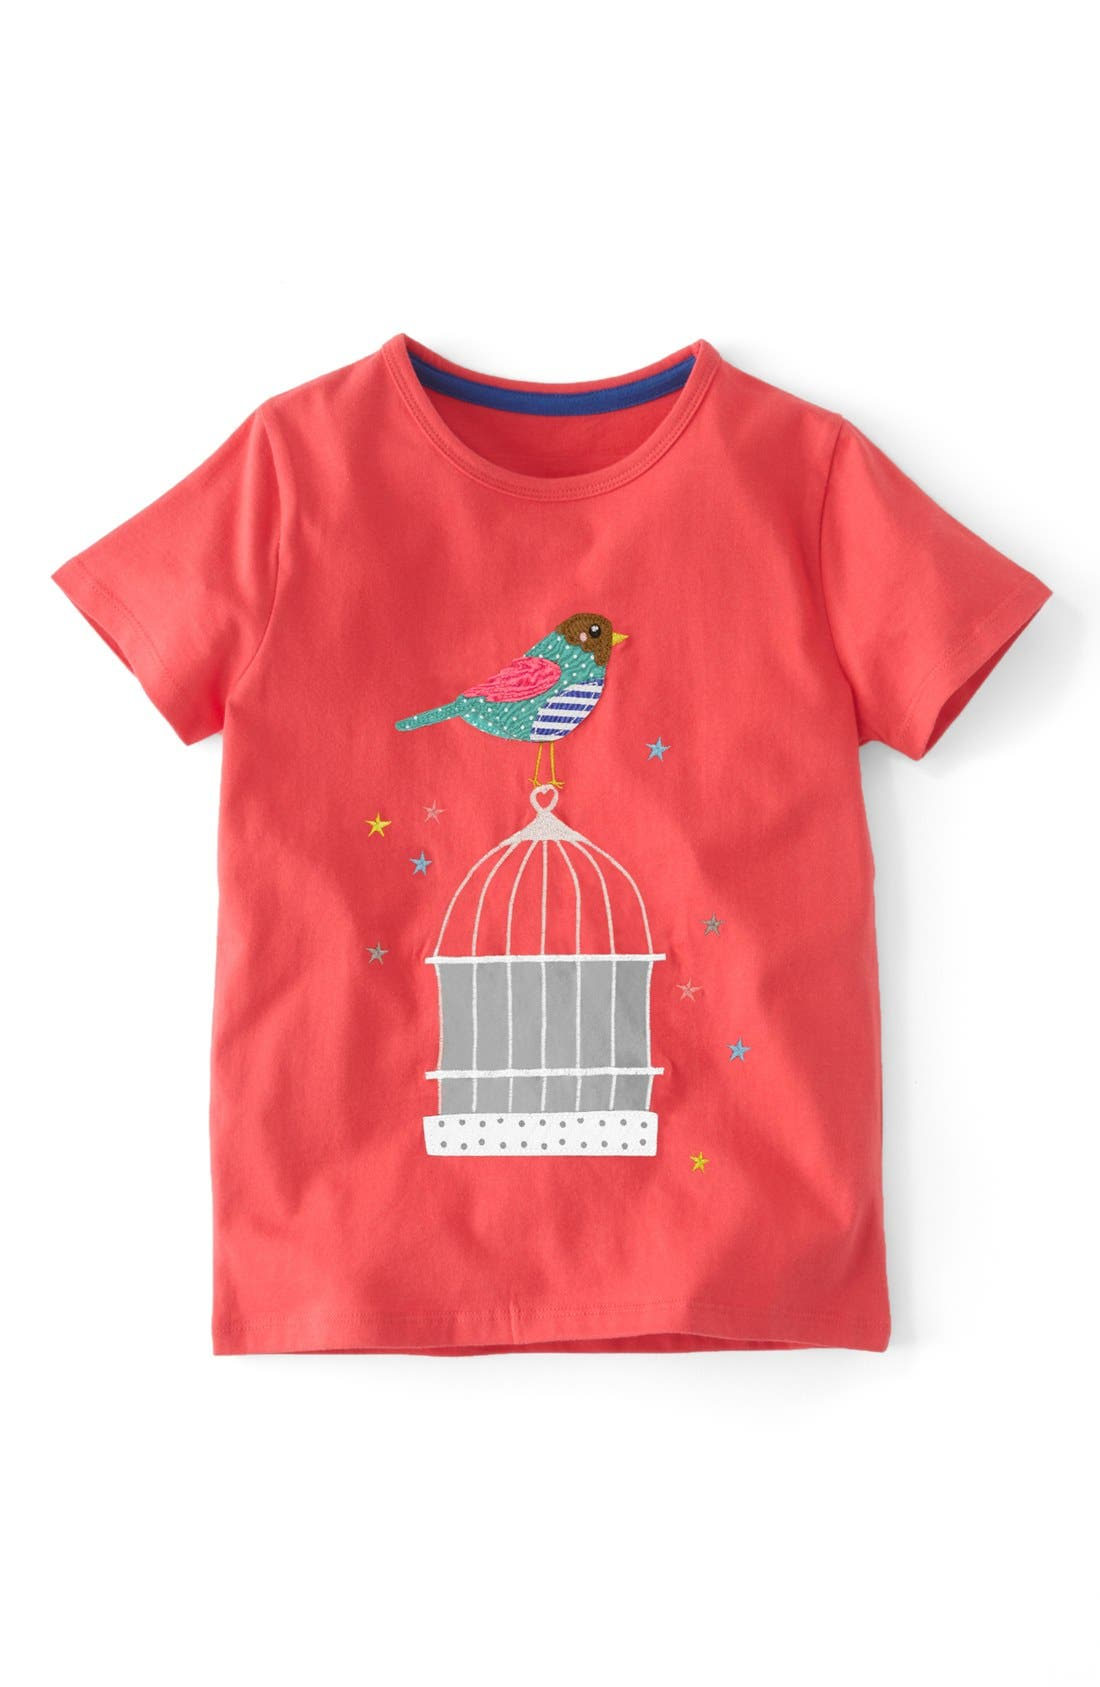 Alternate Image 1 Selected - Mini Boden Patchwork Appliqué Tee (Toddler Girls, Little Girls & Big Girls)(Online Only)